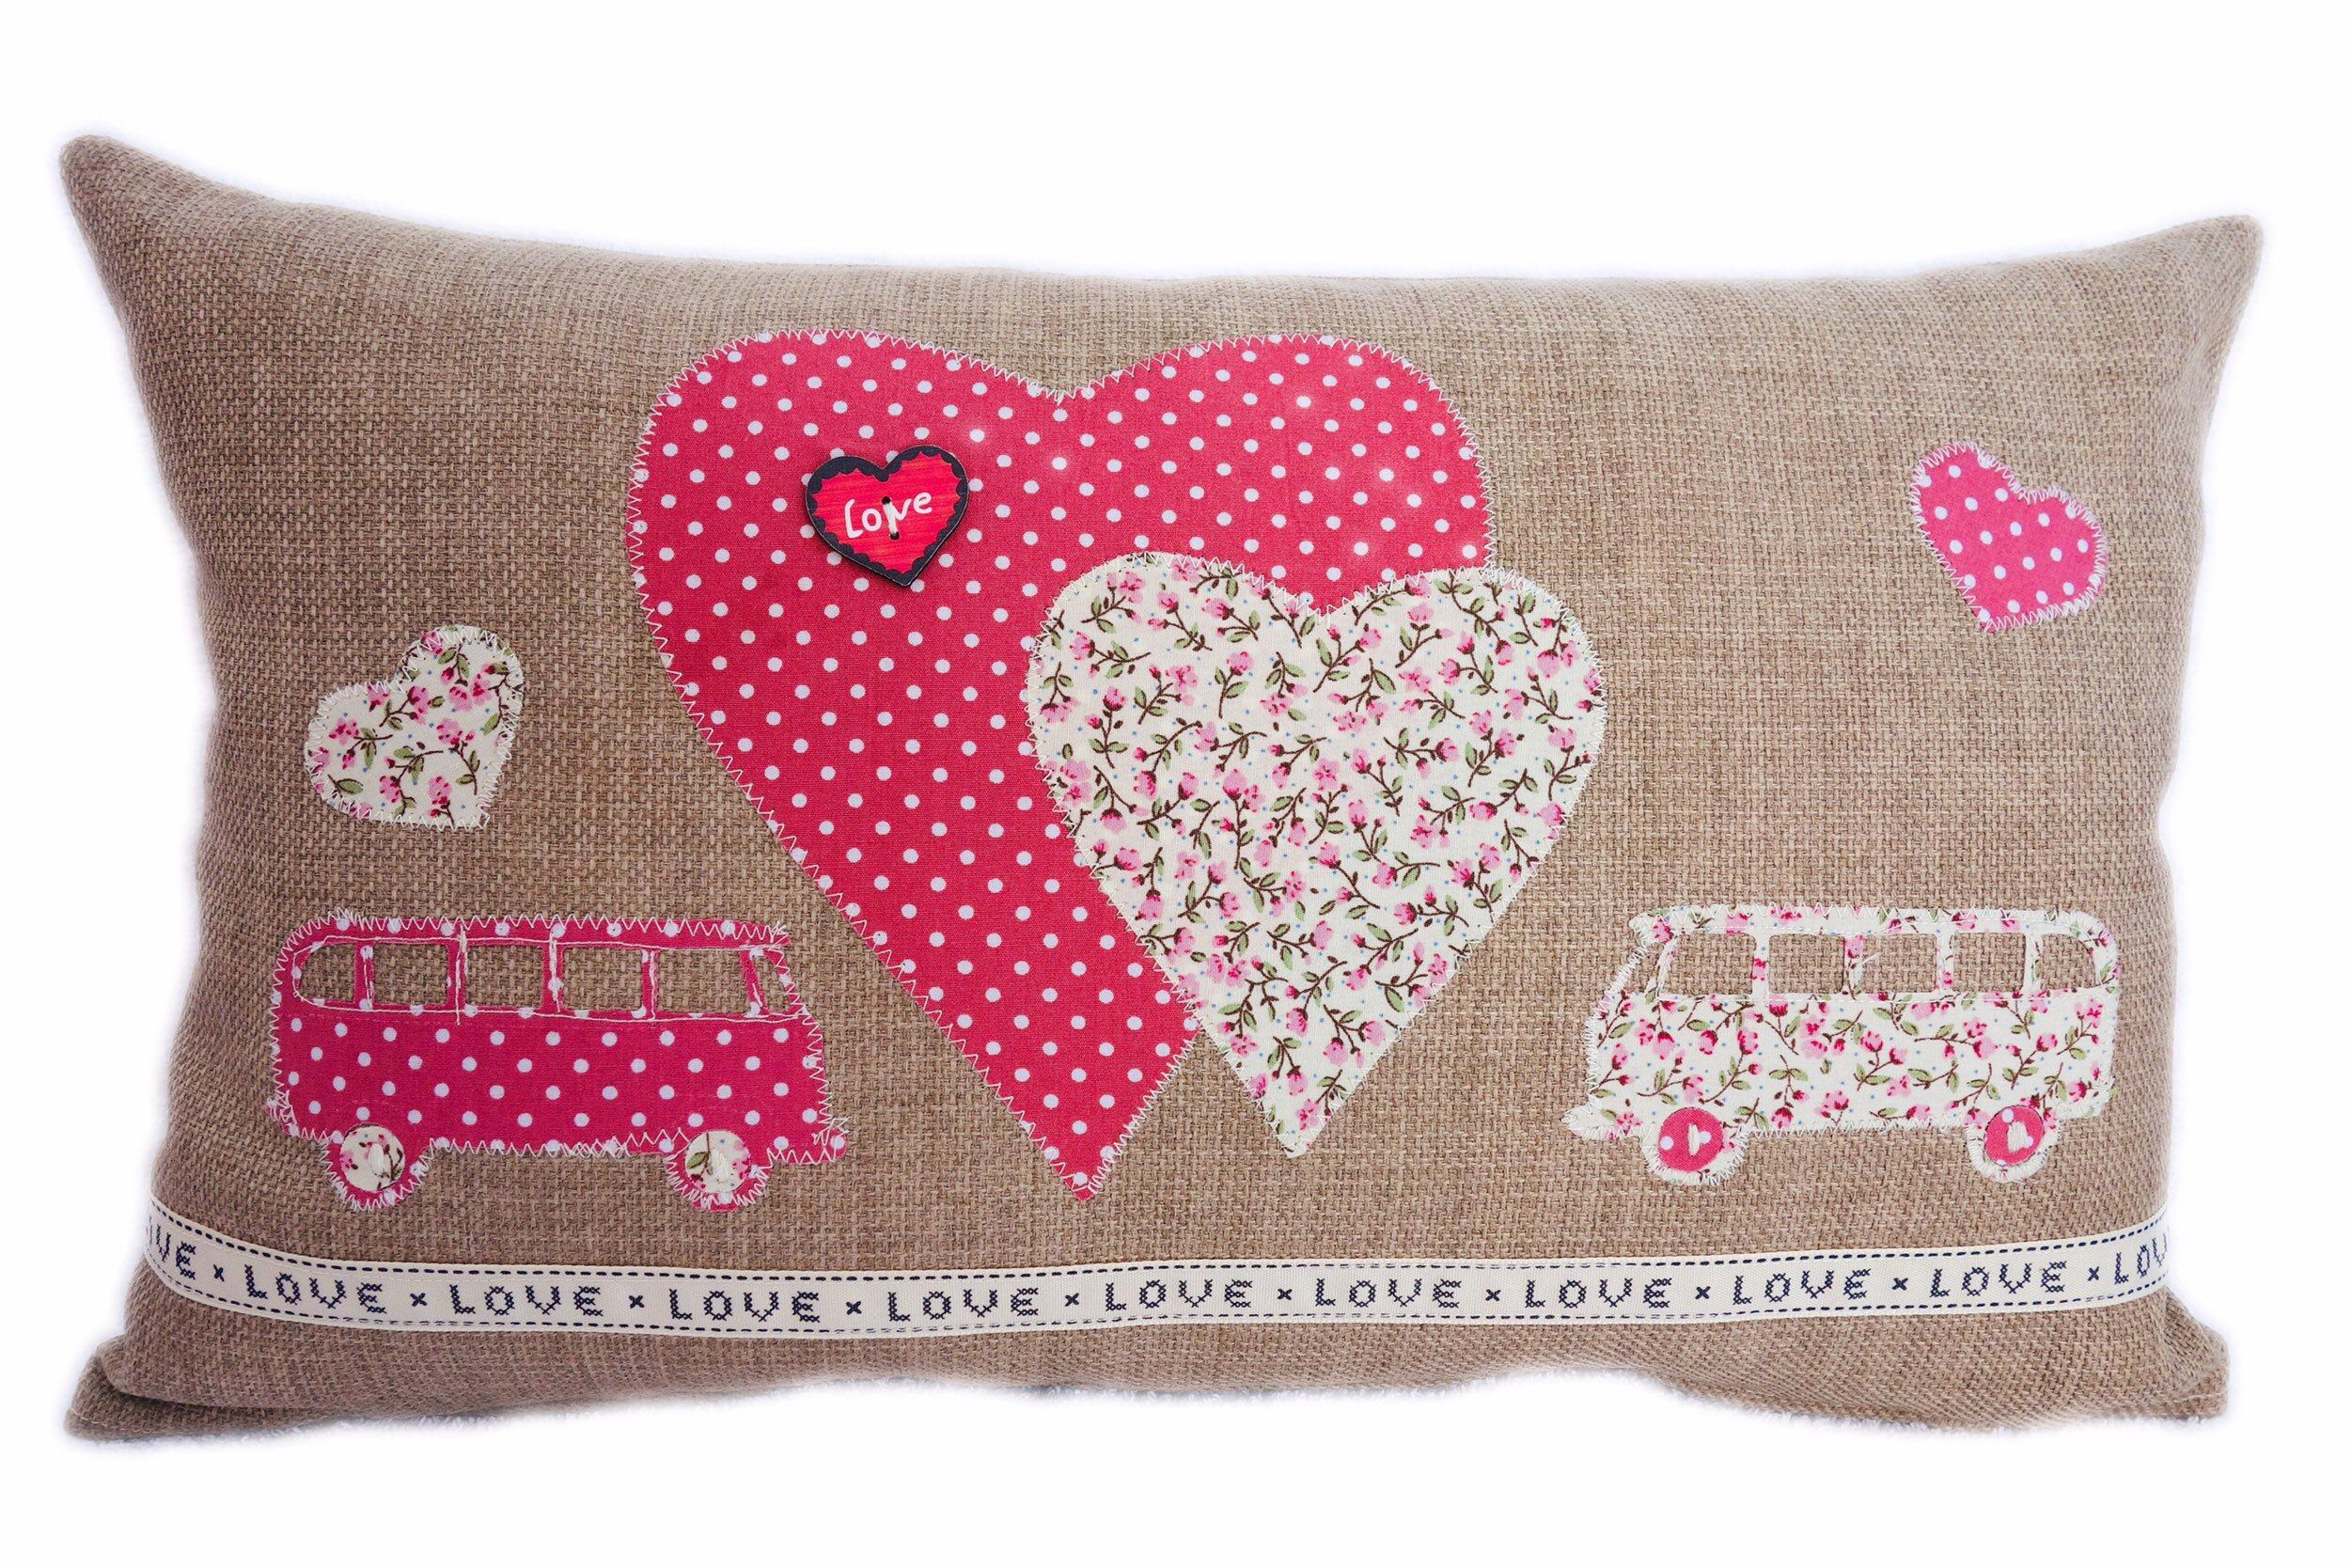 Campervan Appliqué Decorative Feature Cushion, Pink and Floral Campers and Hearts design :  Excite